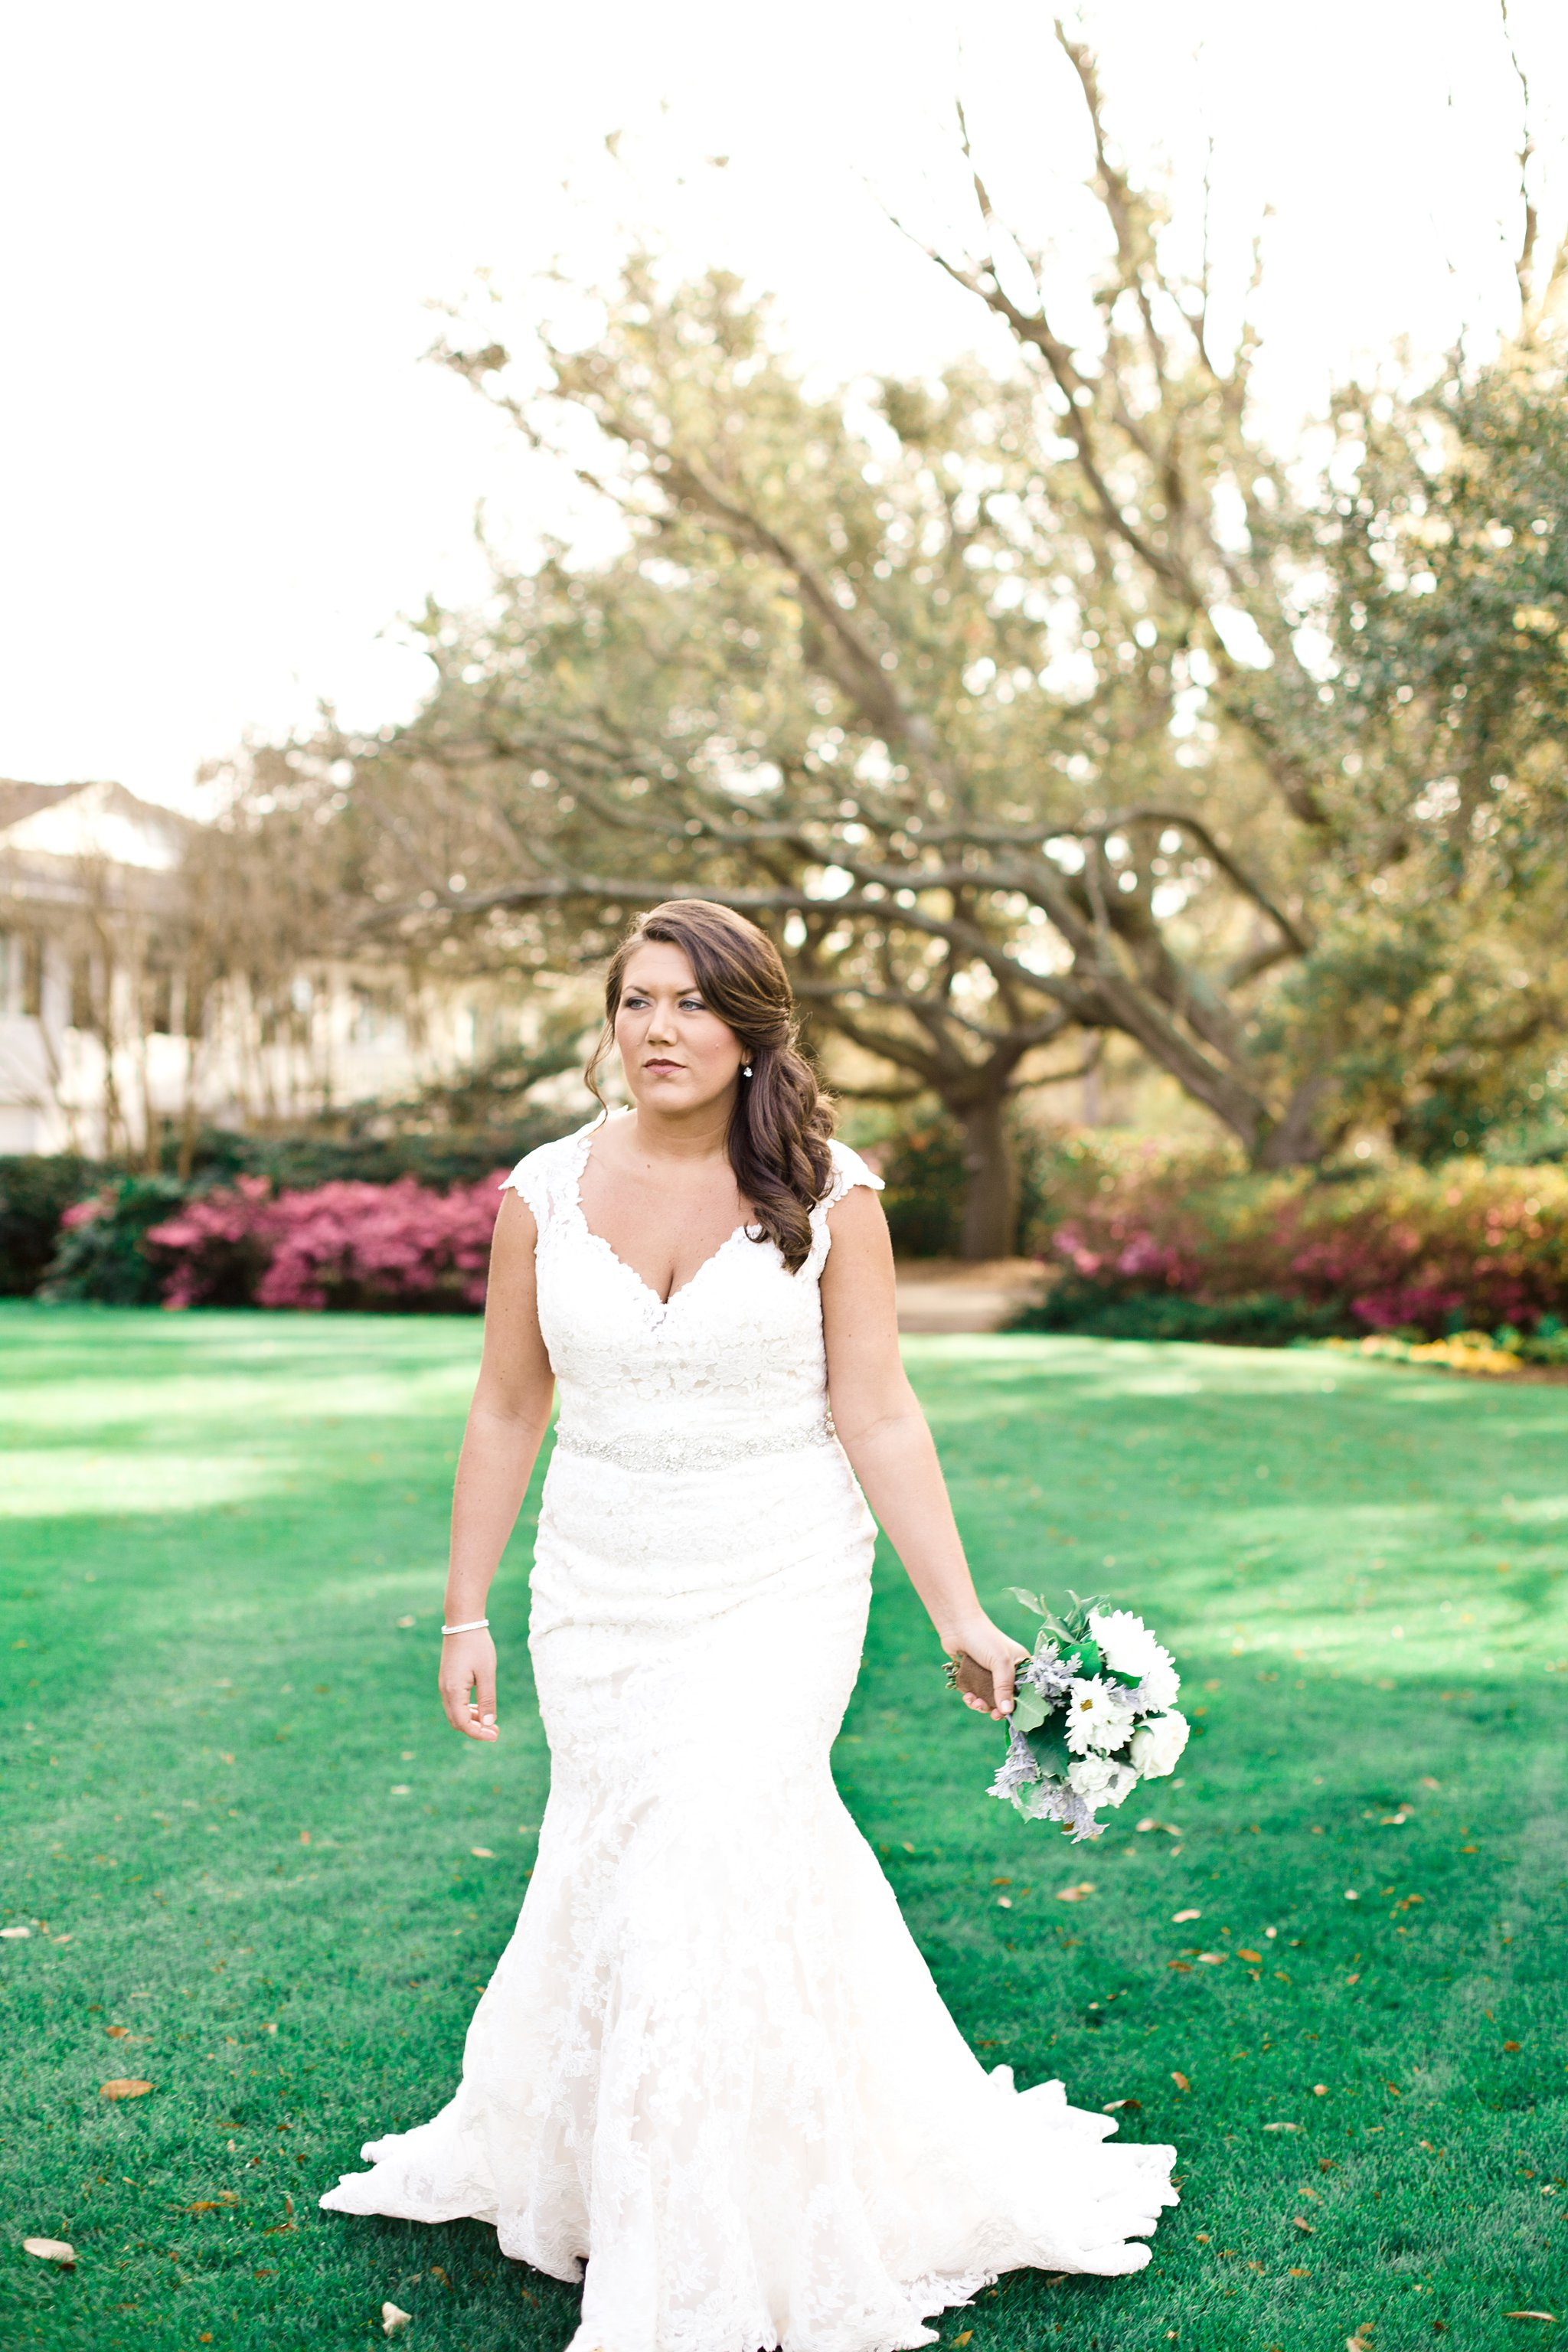 litchfield-golf-country-club-bridal-session-pawleys-island-sc-photos_0105.jpg